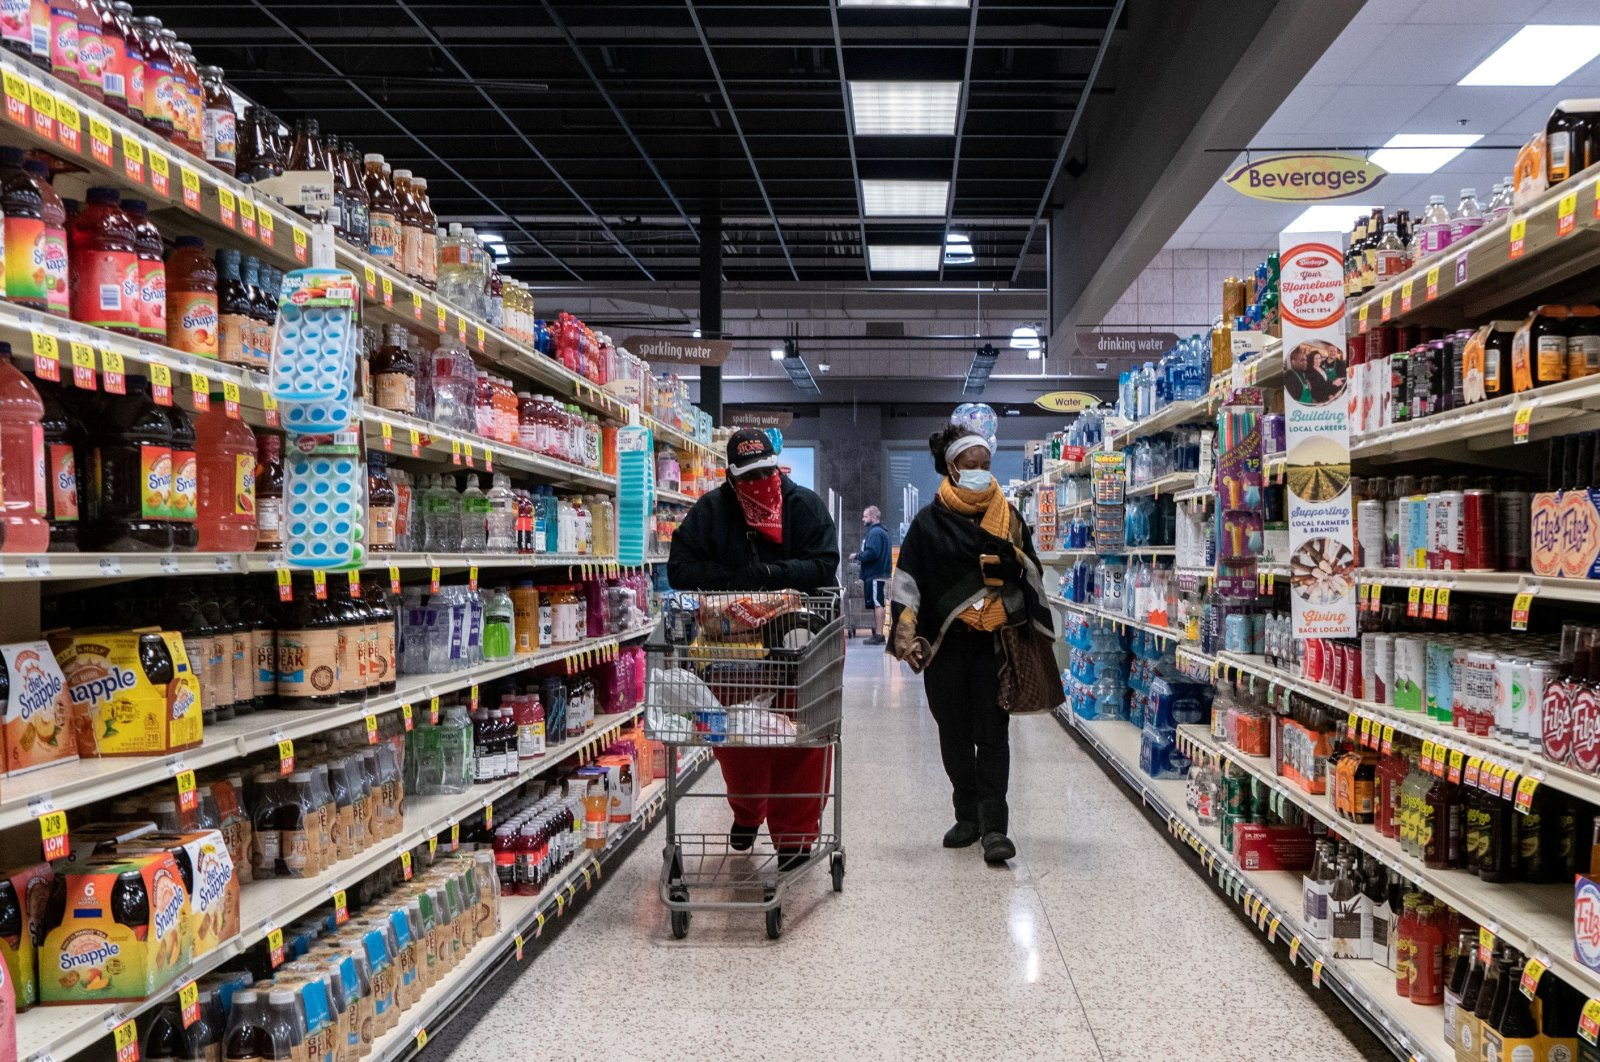 Shoppers browse in a supermarket while wearing masks to help slow the spread of the coronavirus in north St. Louis, Missouri, U.S., April 4, 2020. (Reuters Photo)